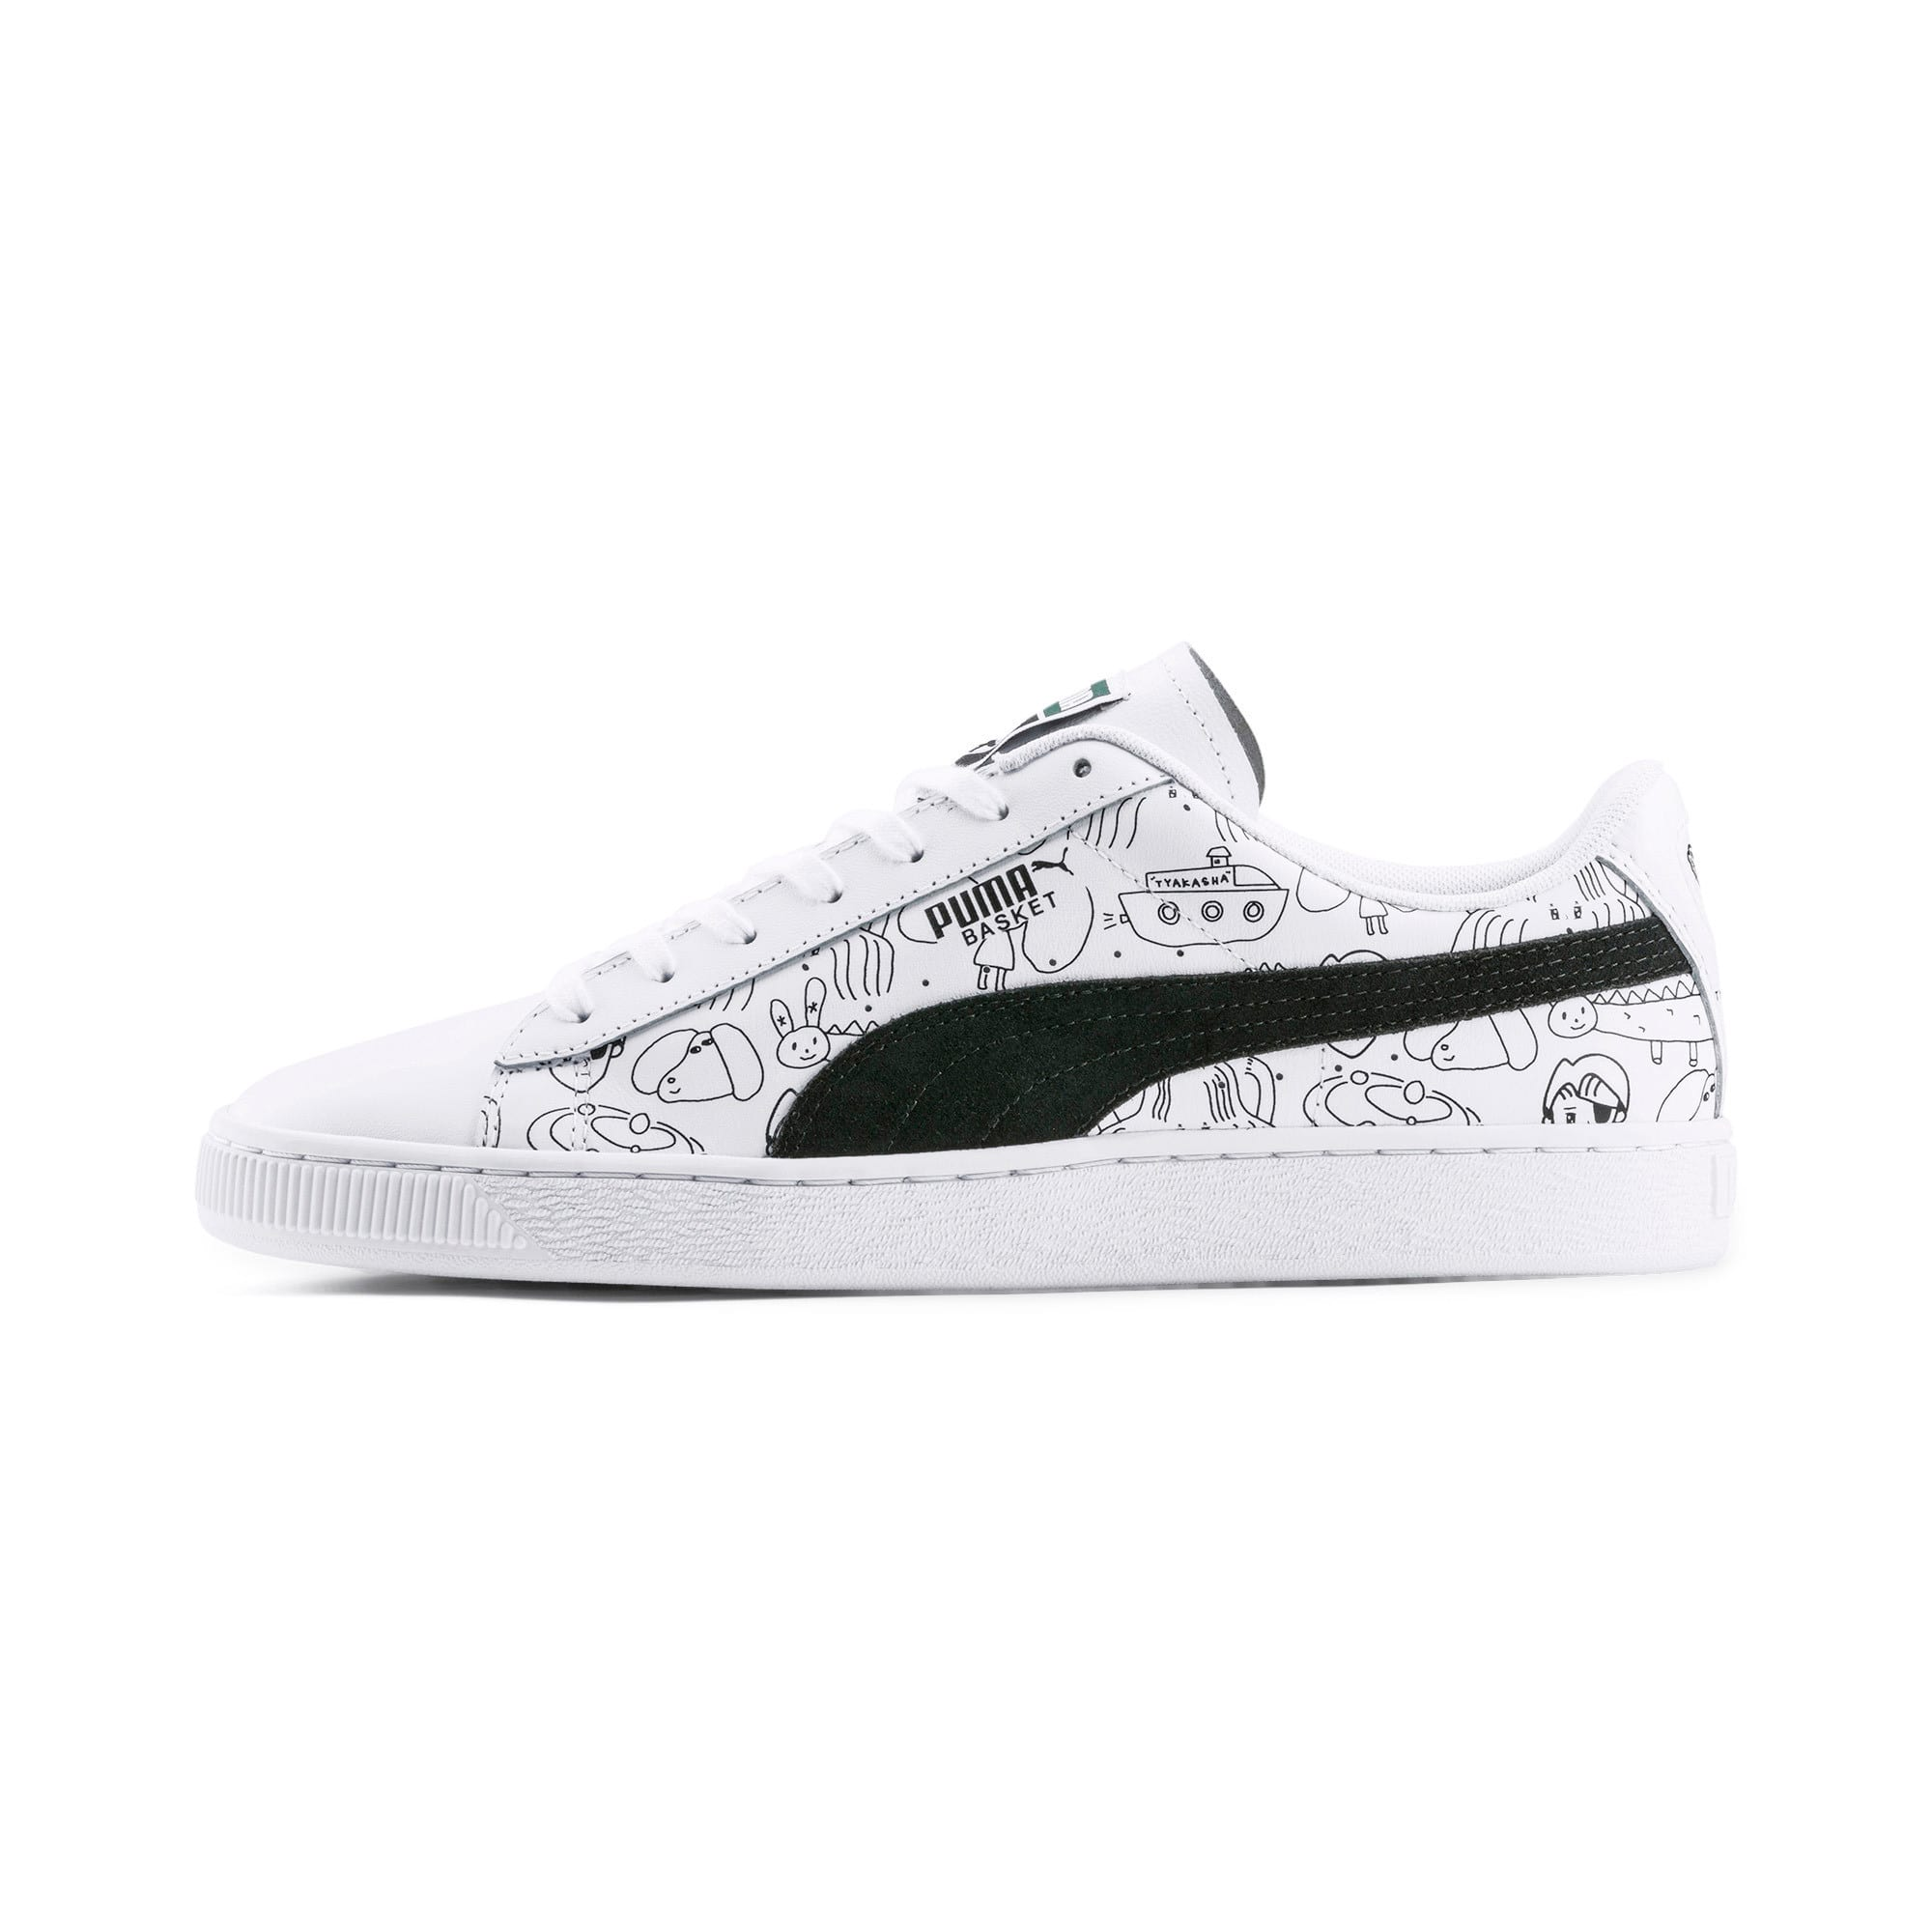 Thumbnail 1 of PUMA x TYAKASHA バスケット スニーカー, Puma White-Puma Black, medium-JPN